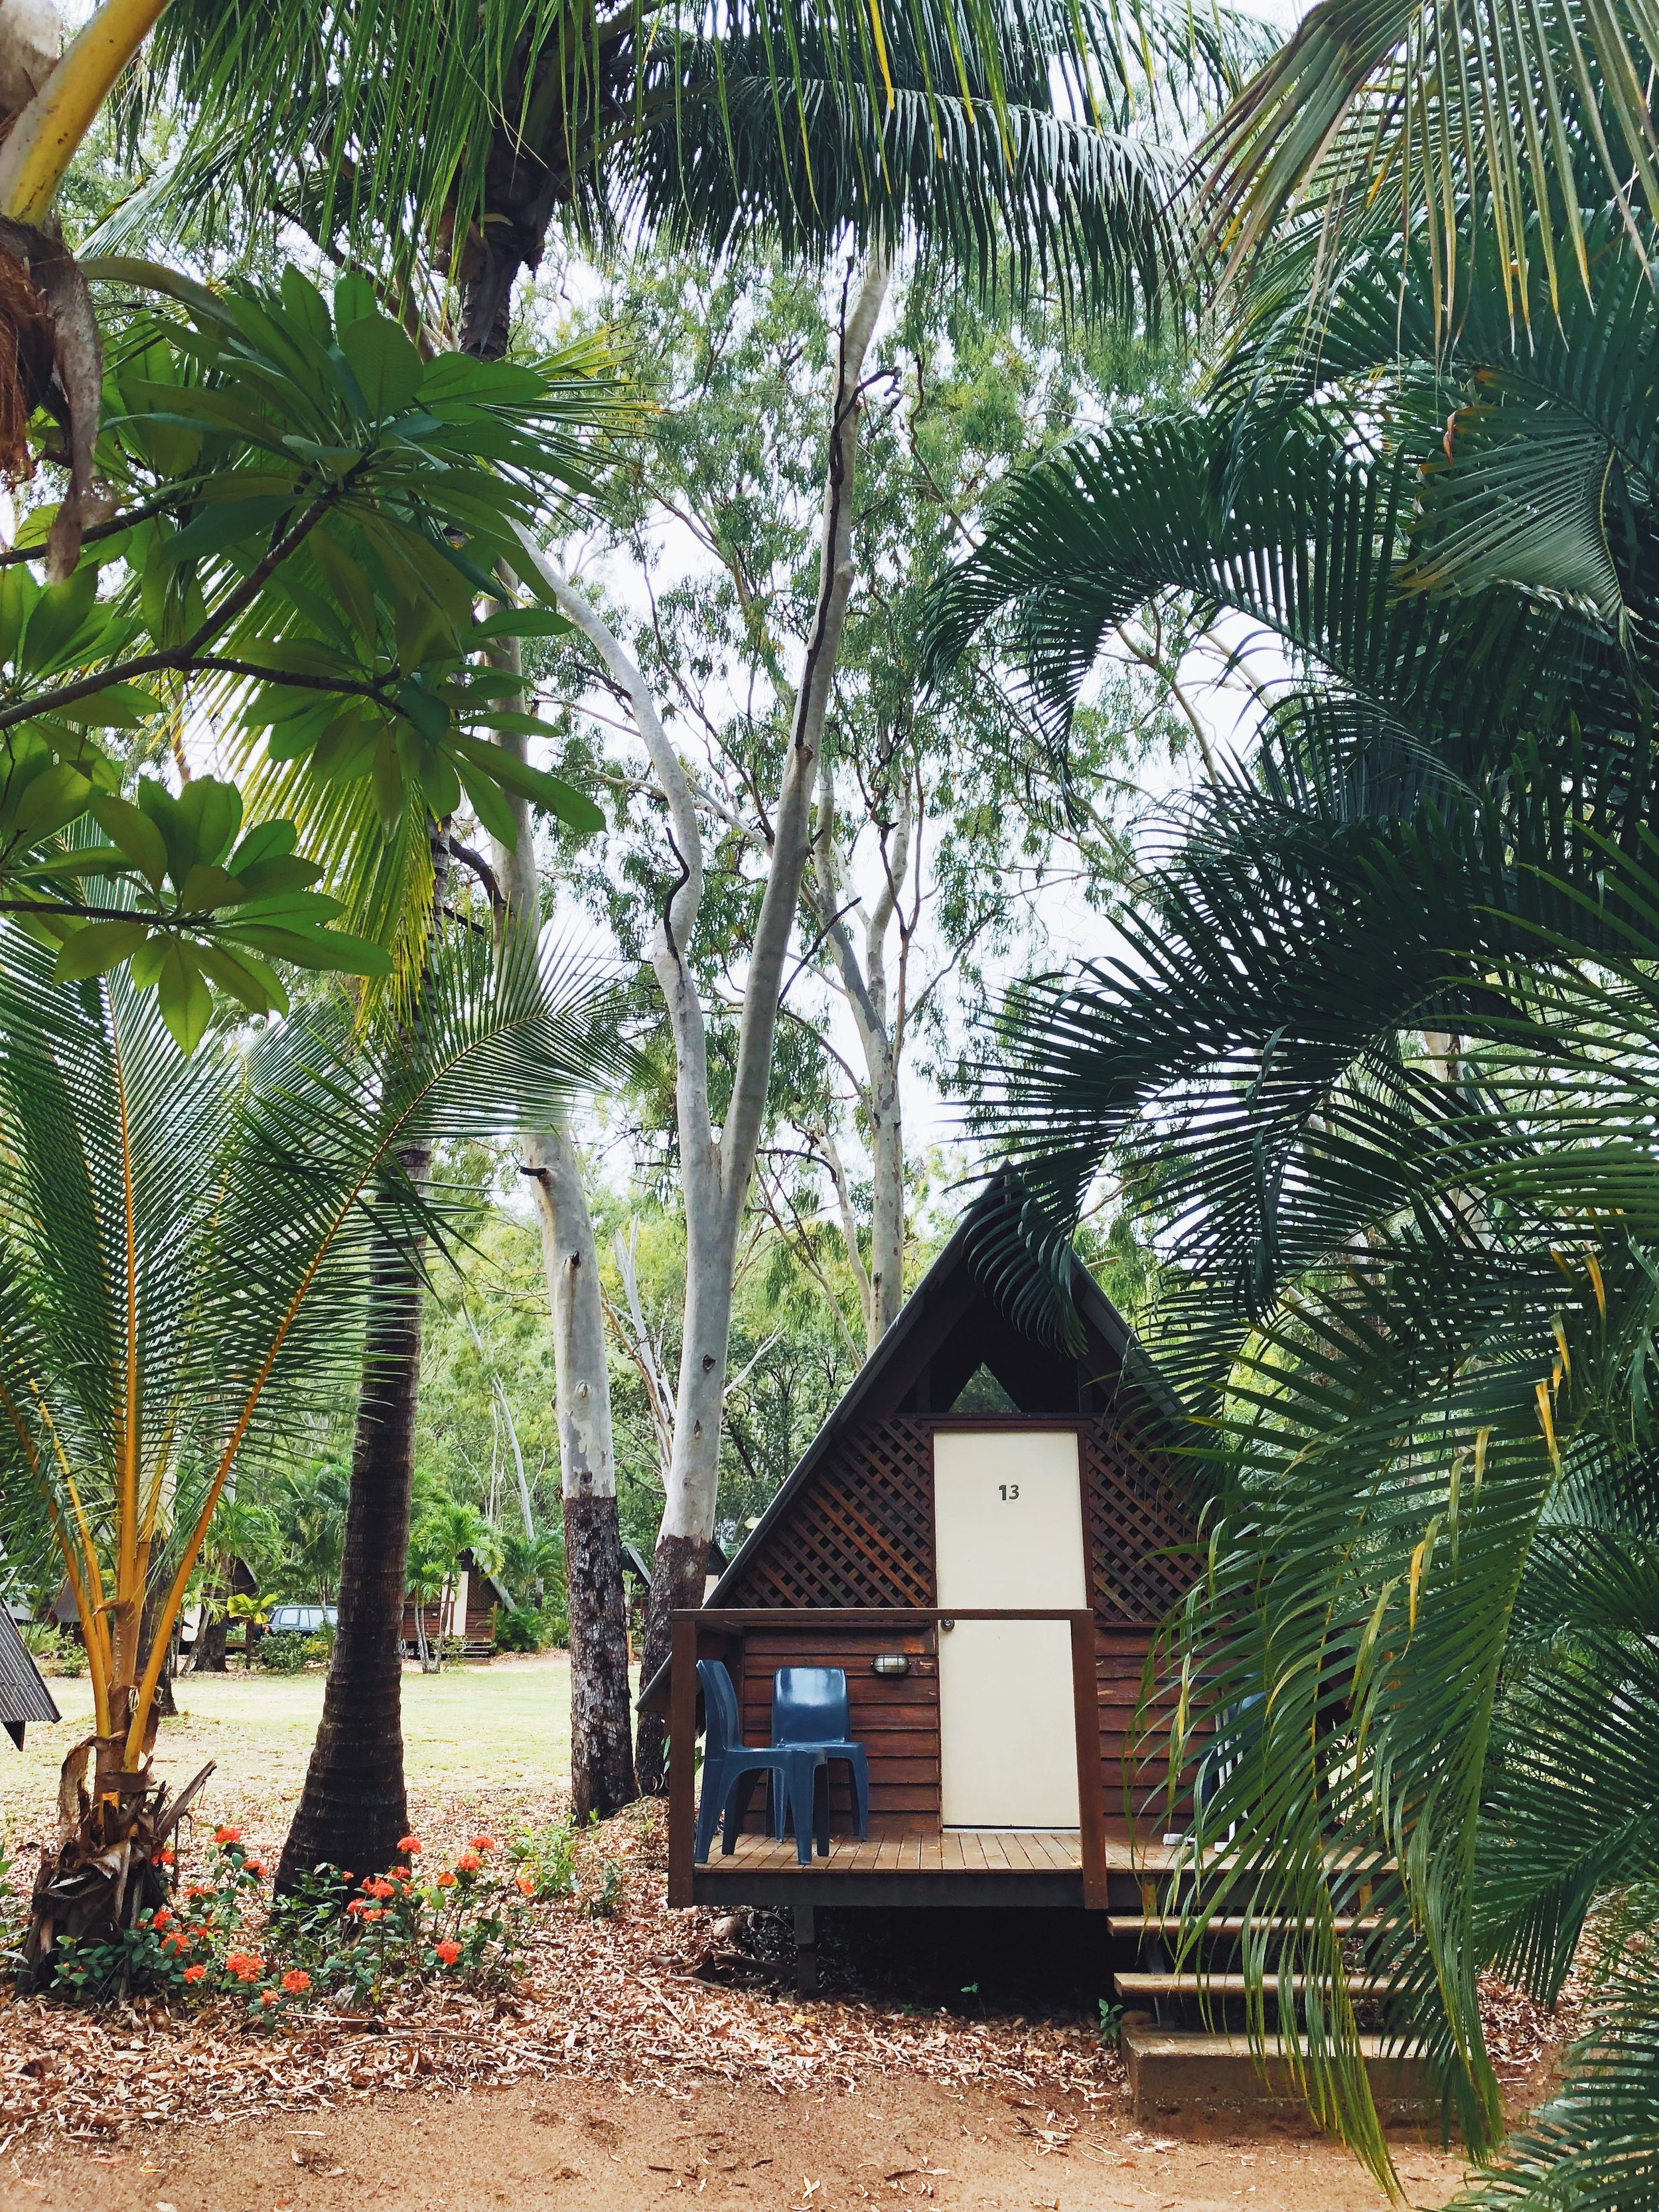 - We decided to stay in a private bungalow, which was small but had everything we needed with 2 bunk beds and a small fridge. The bathroom was a short walk up the footpath, and the room had a fan but no A/C.